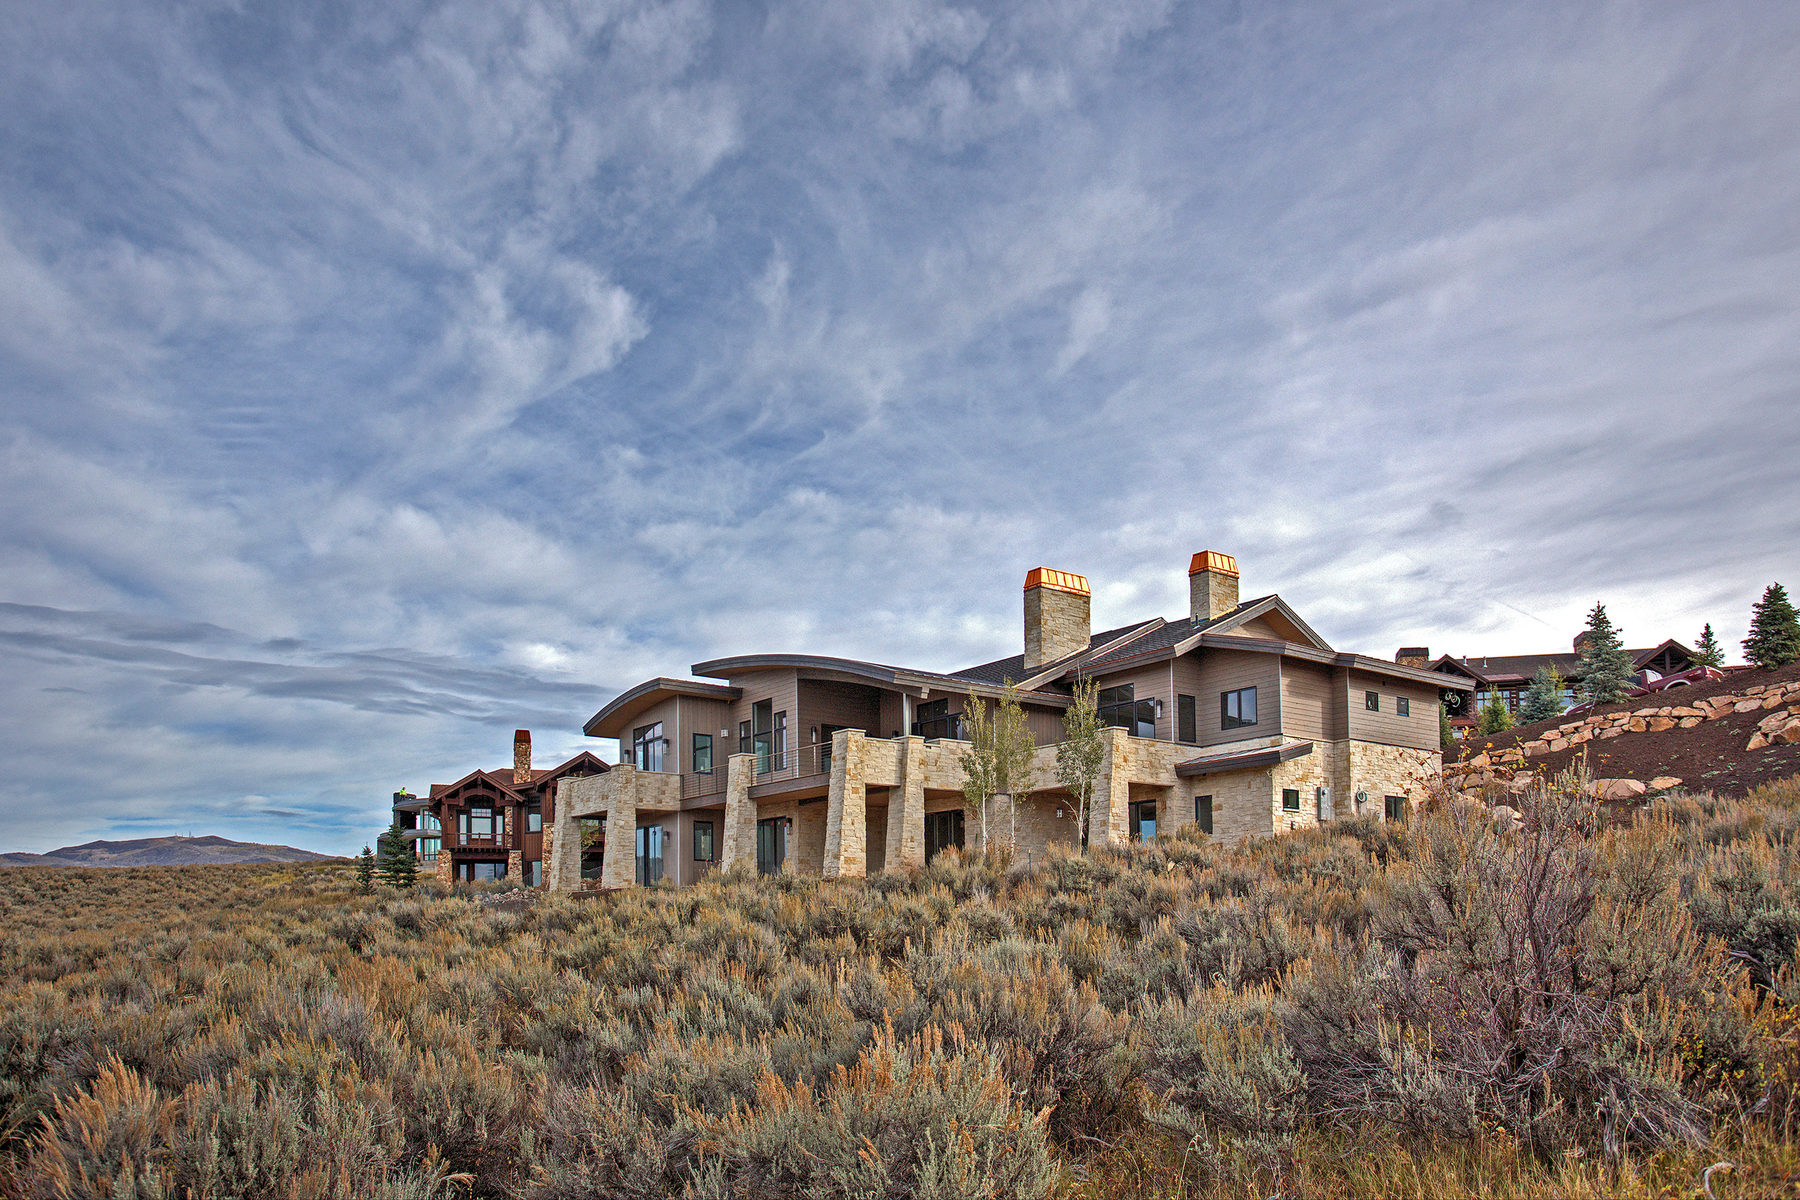 独户住宅 为 销售 在 Mountain Modern - New Construction 7811 N West Hills Trl Park City, 犹他州 84098 美国